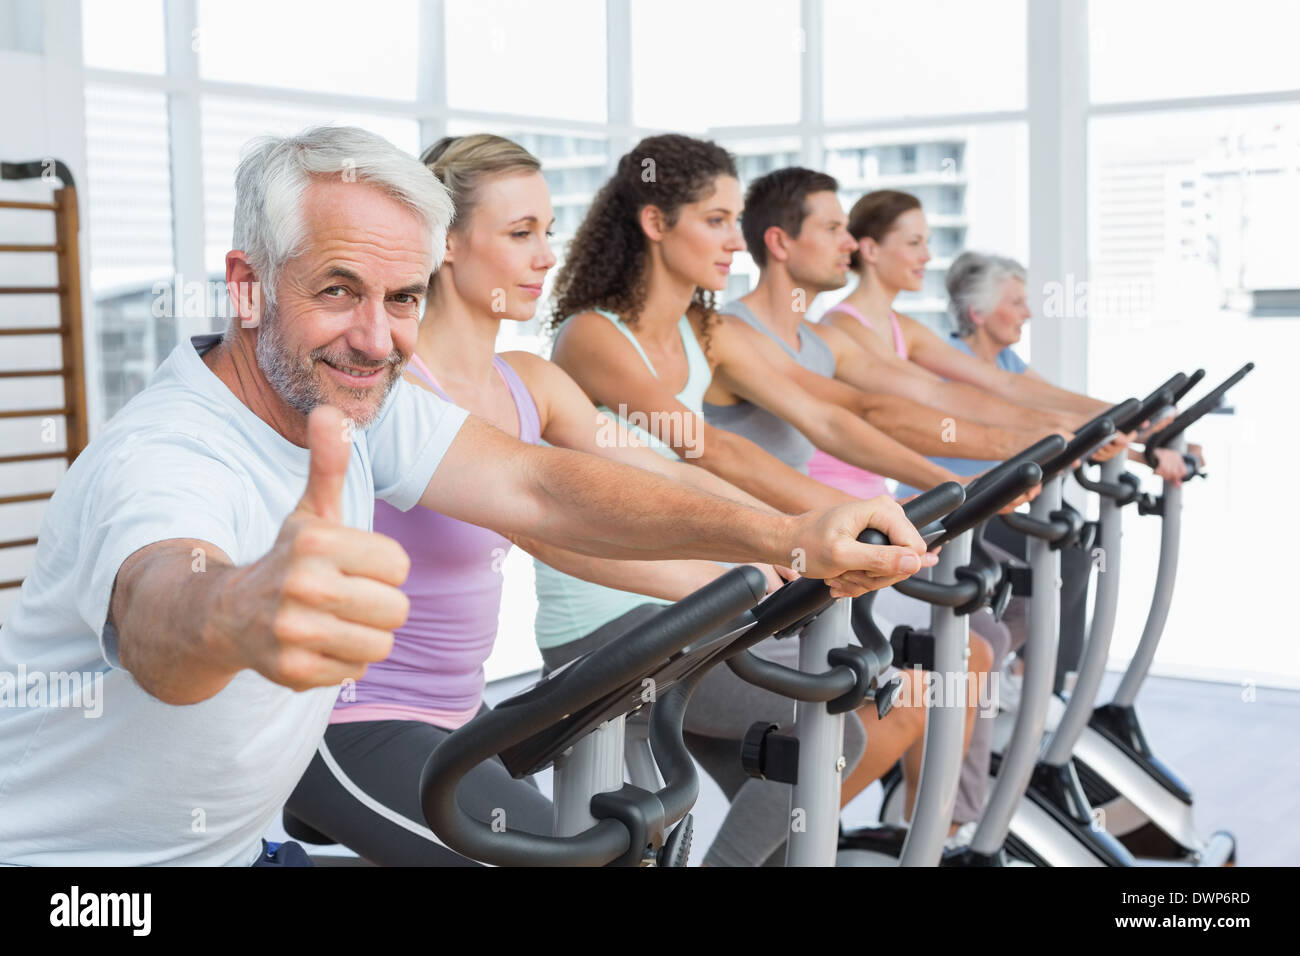 Man gesturing thumbs up with class at spinning class - Stock Image